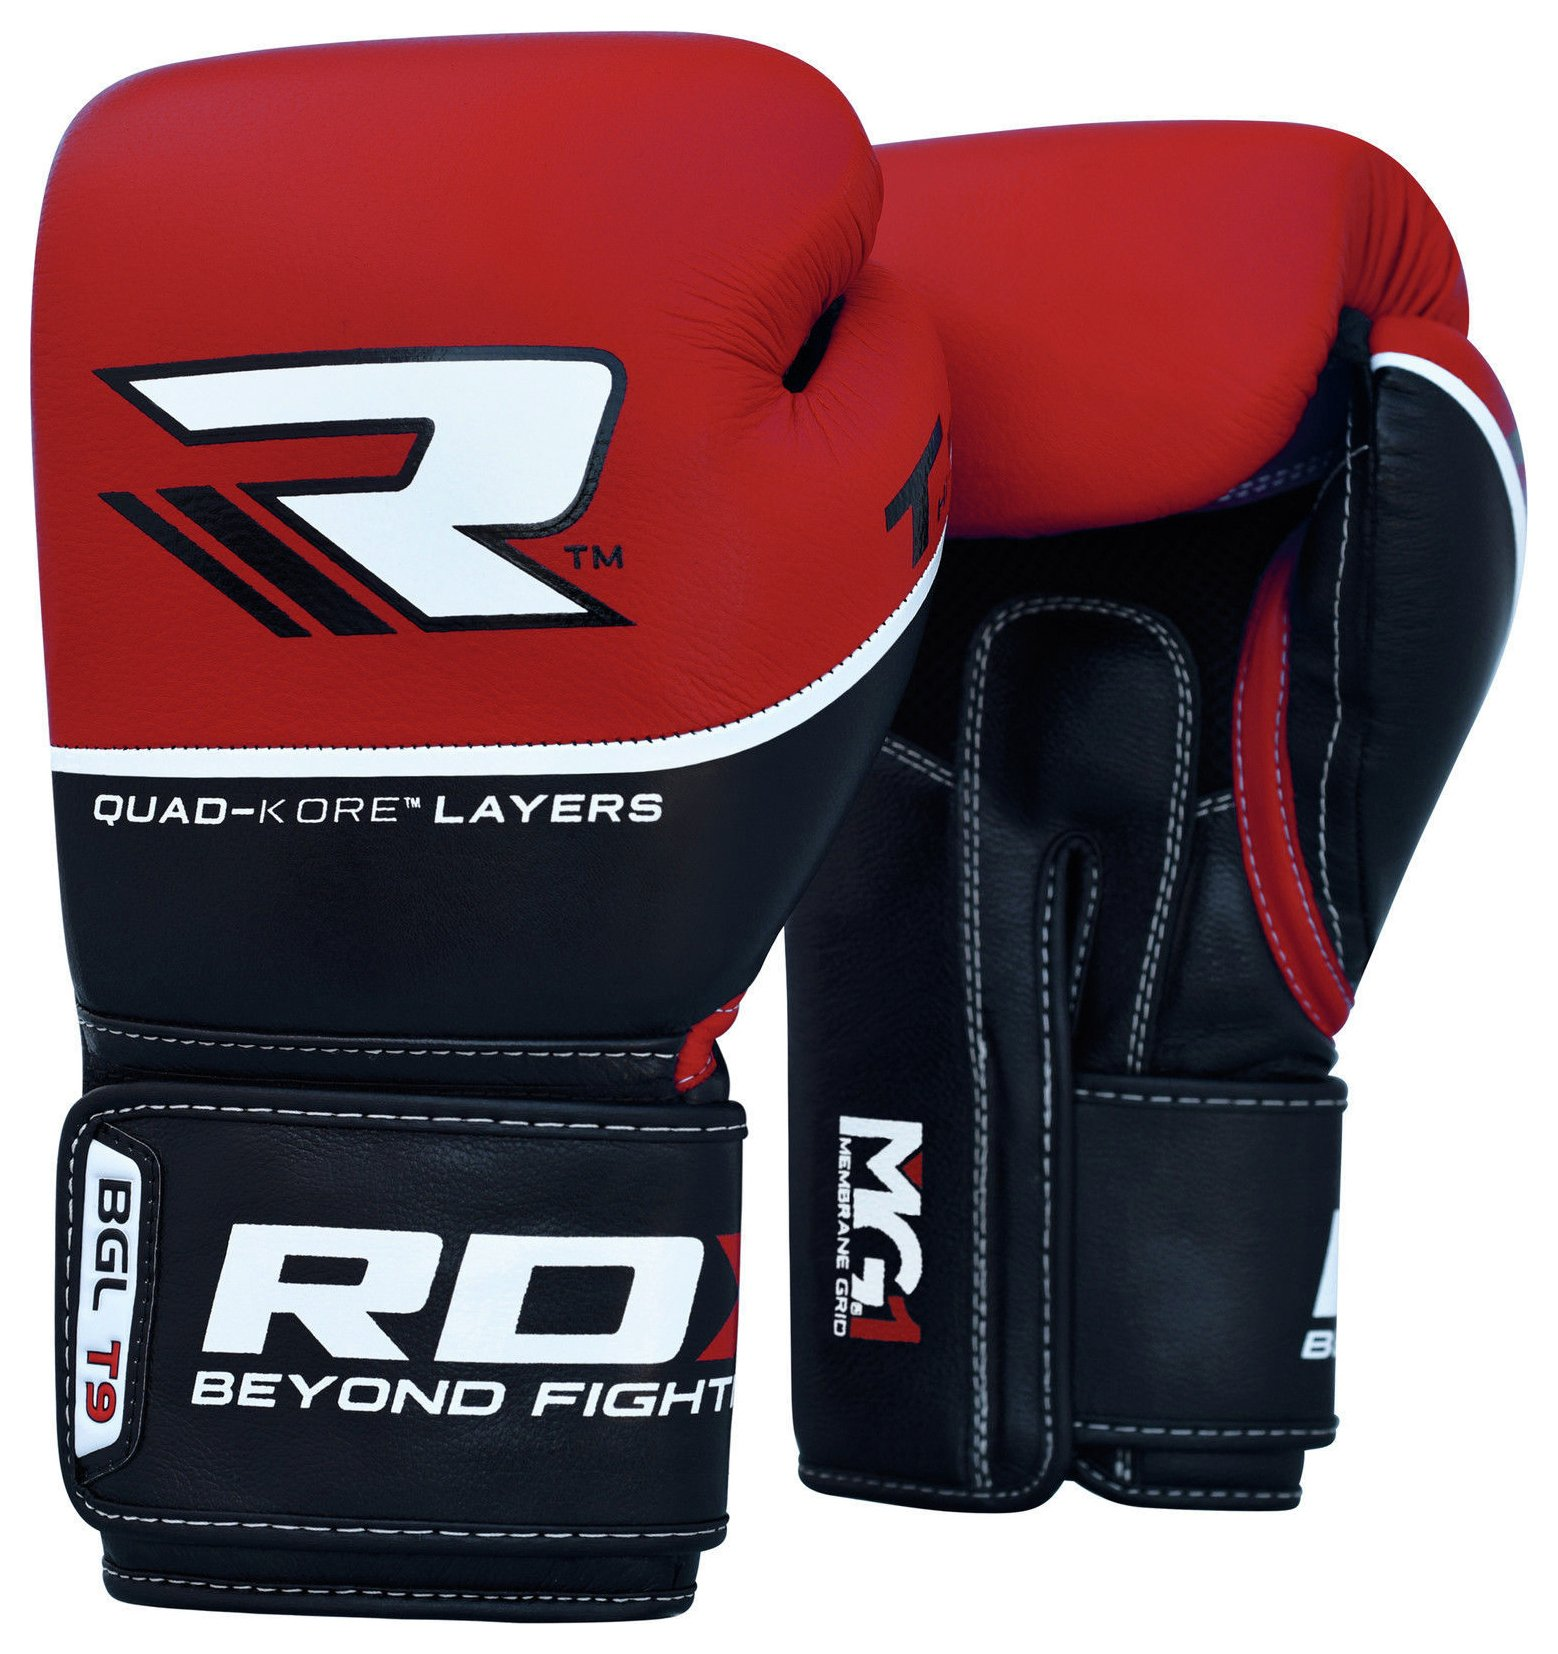 RDX - Quad Kore 16oz Boxing Gloves - Red lowest price